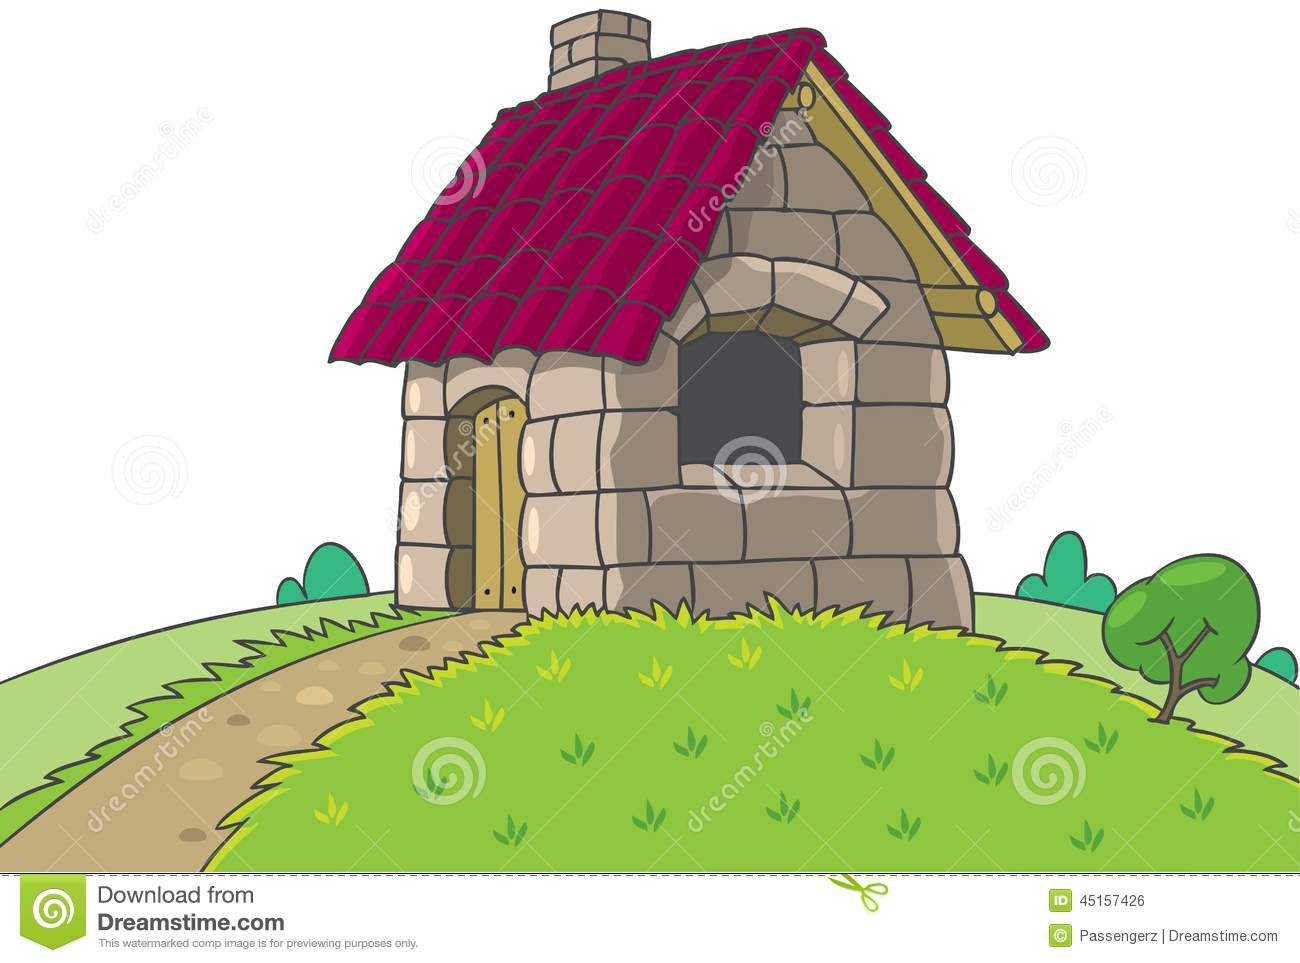 Fairy House From Three Little Pigs Tale Illustration 45157426